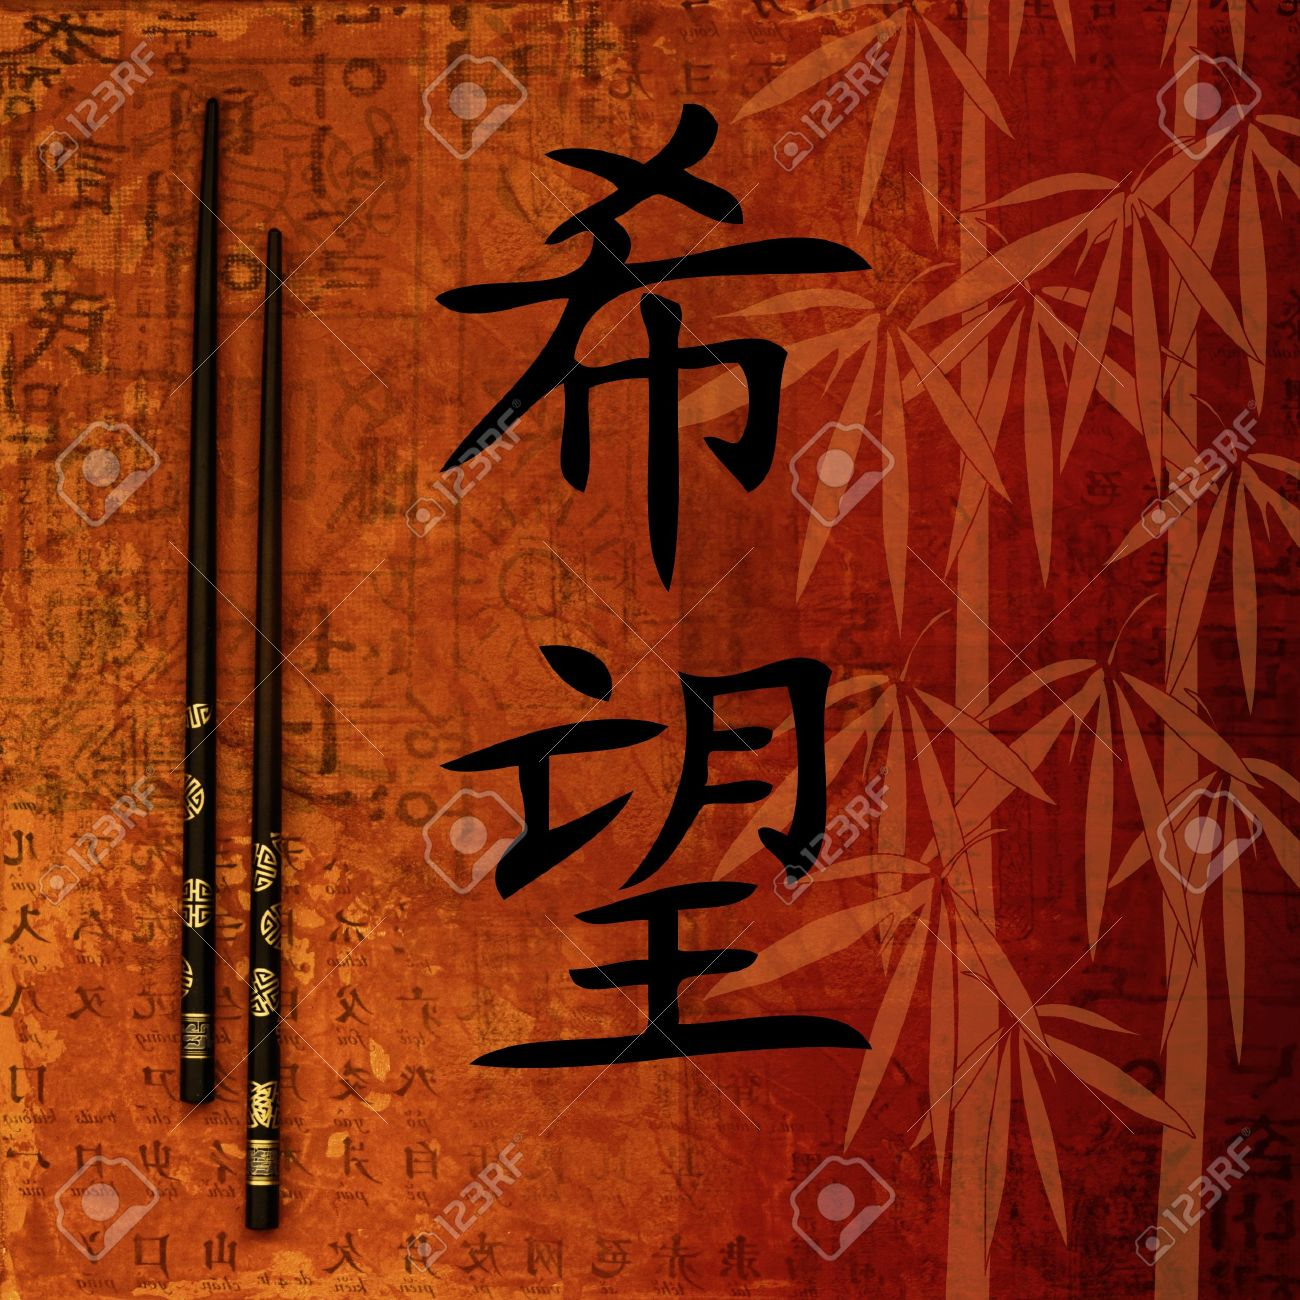 digital created collage asia style with chinese symbol for hope Stock Photo - 6534726